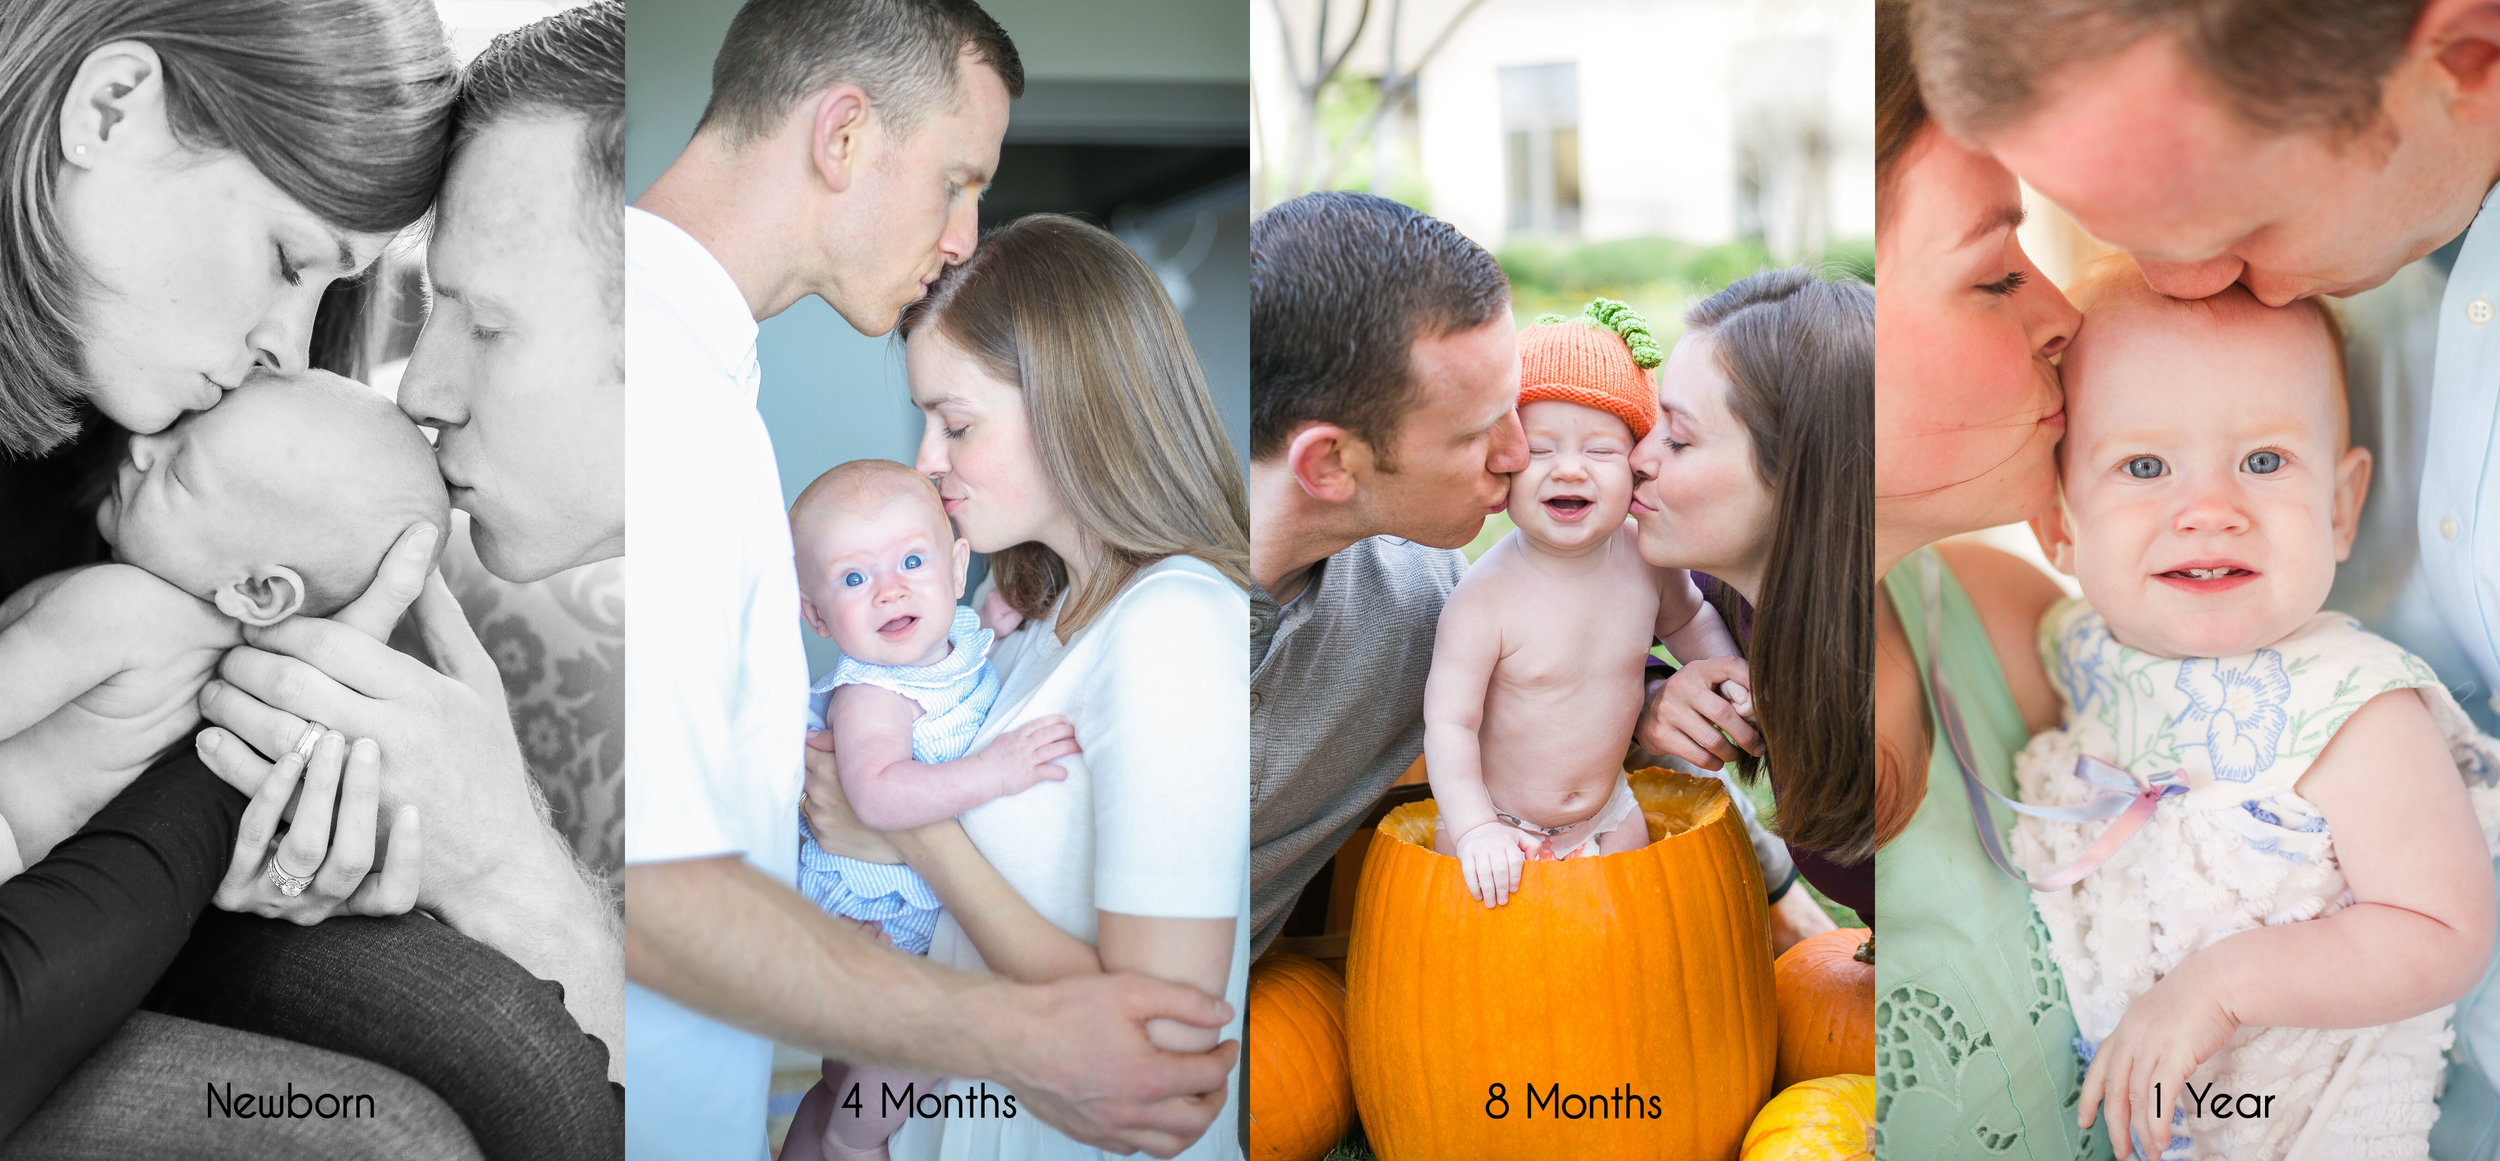 Her parents are so in love with their sweet babe & I love seeing the progression of photos showing all the love they have for their precious daughter.